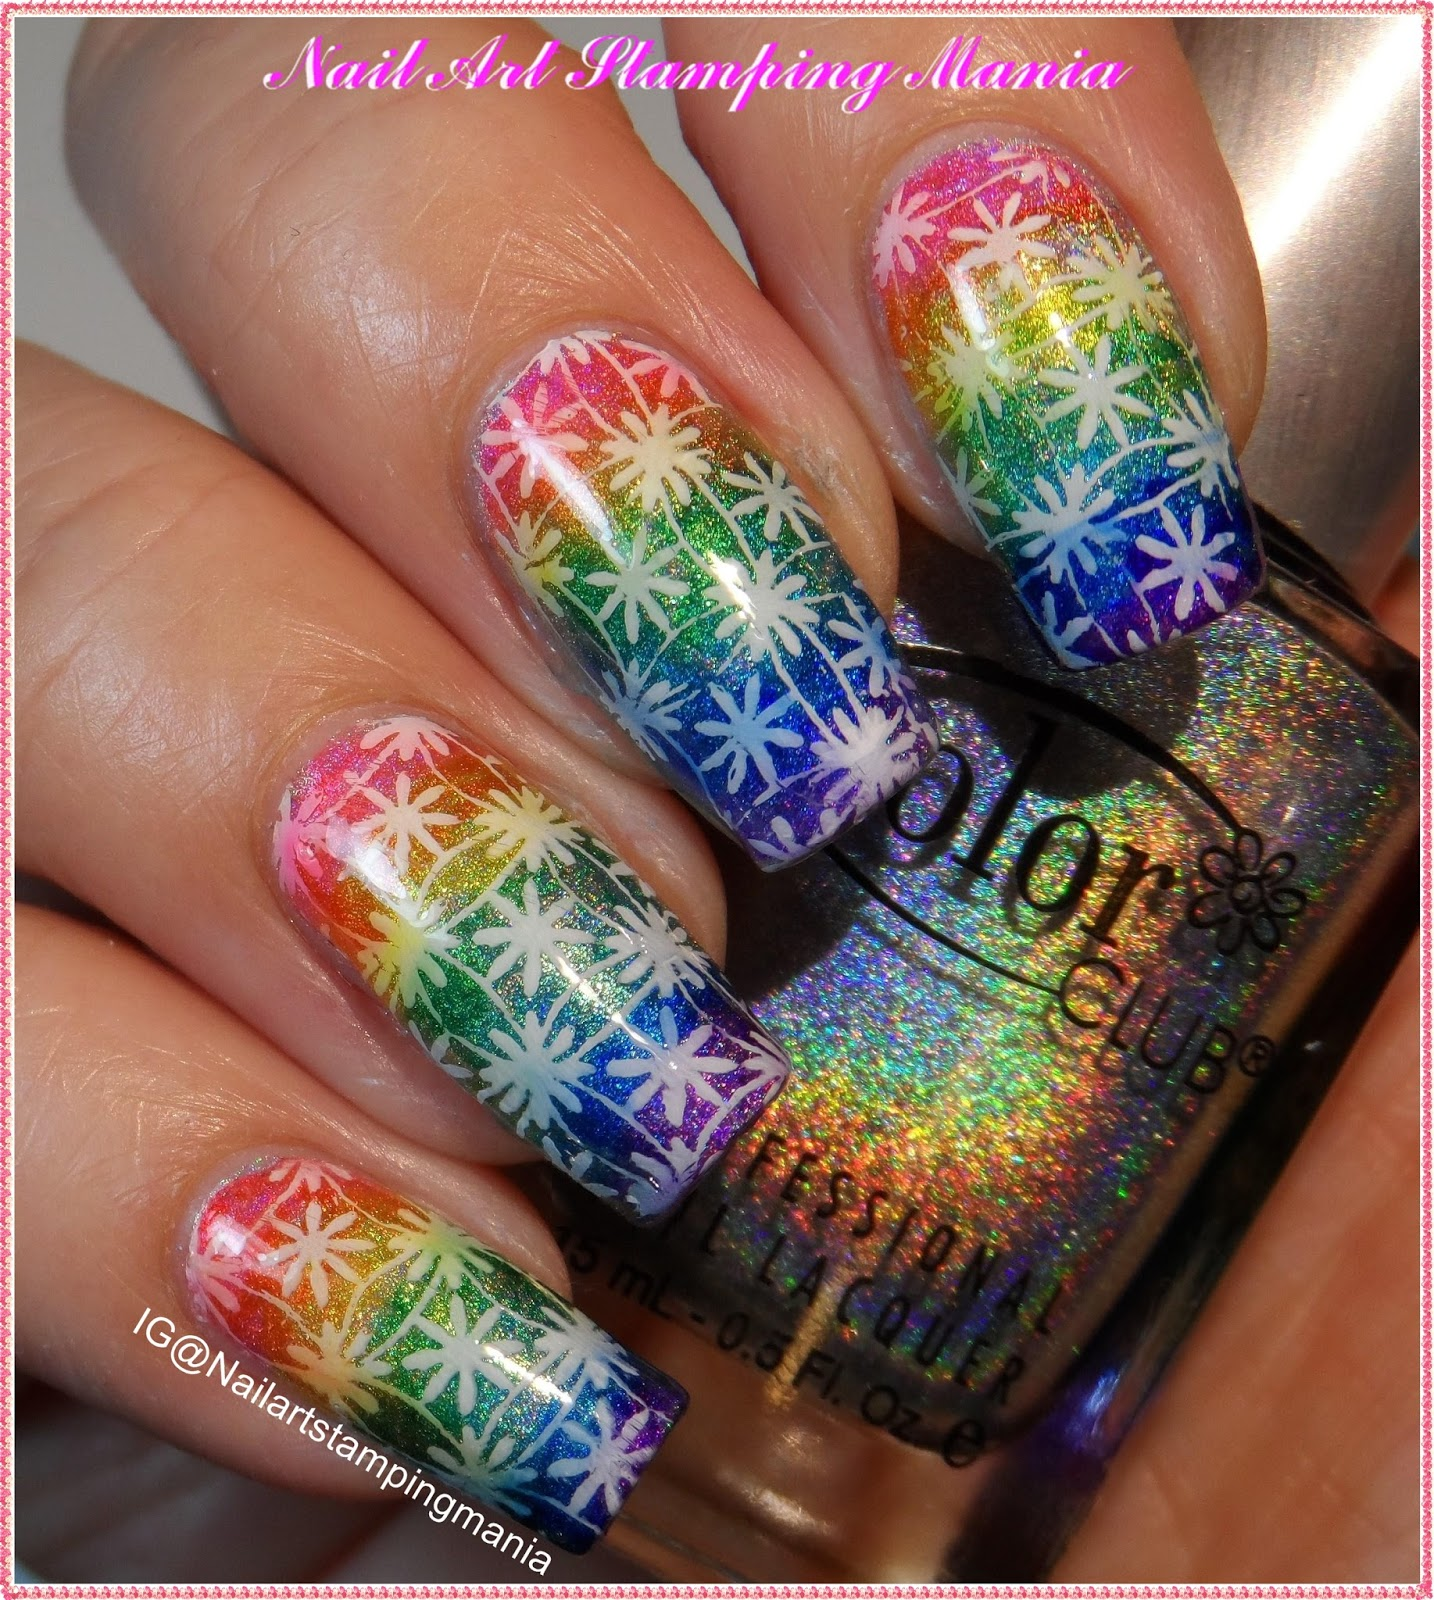 Nail Art Stamping Mania: Rainbow Manicure With Acrylic Stamping ...